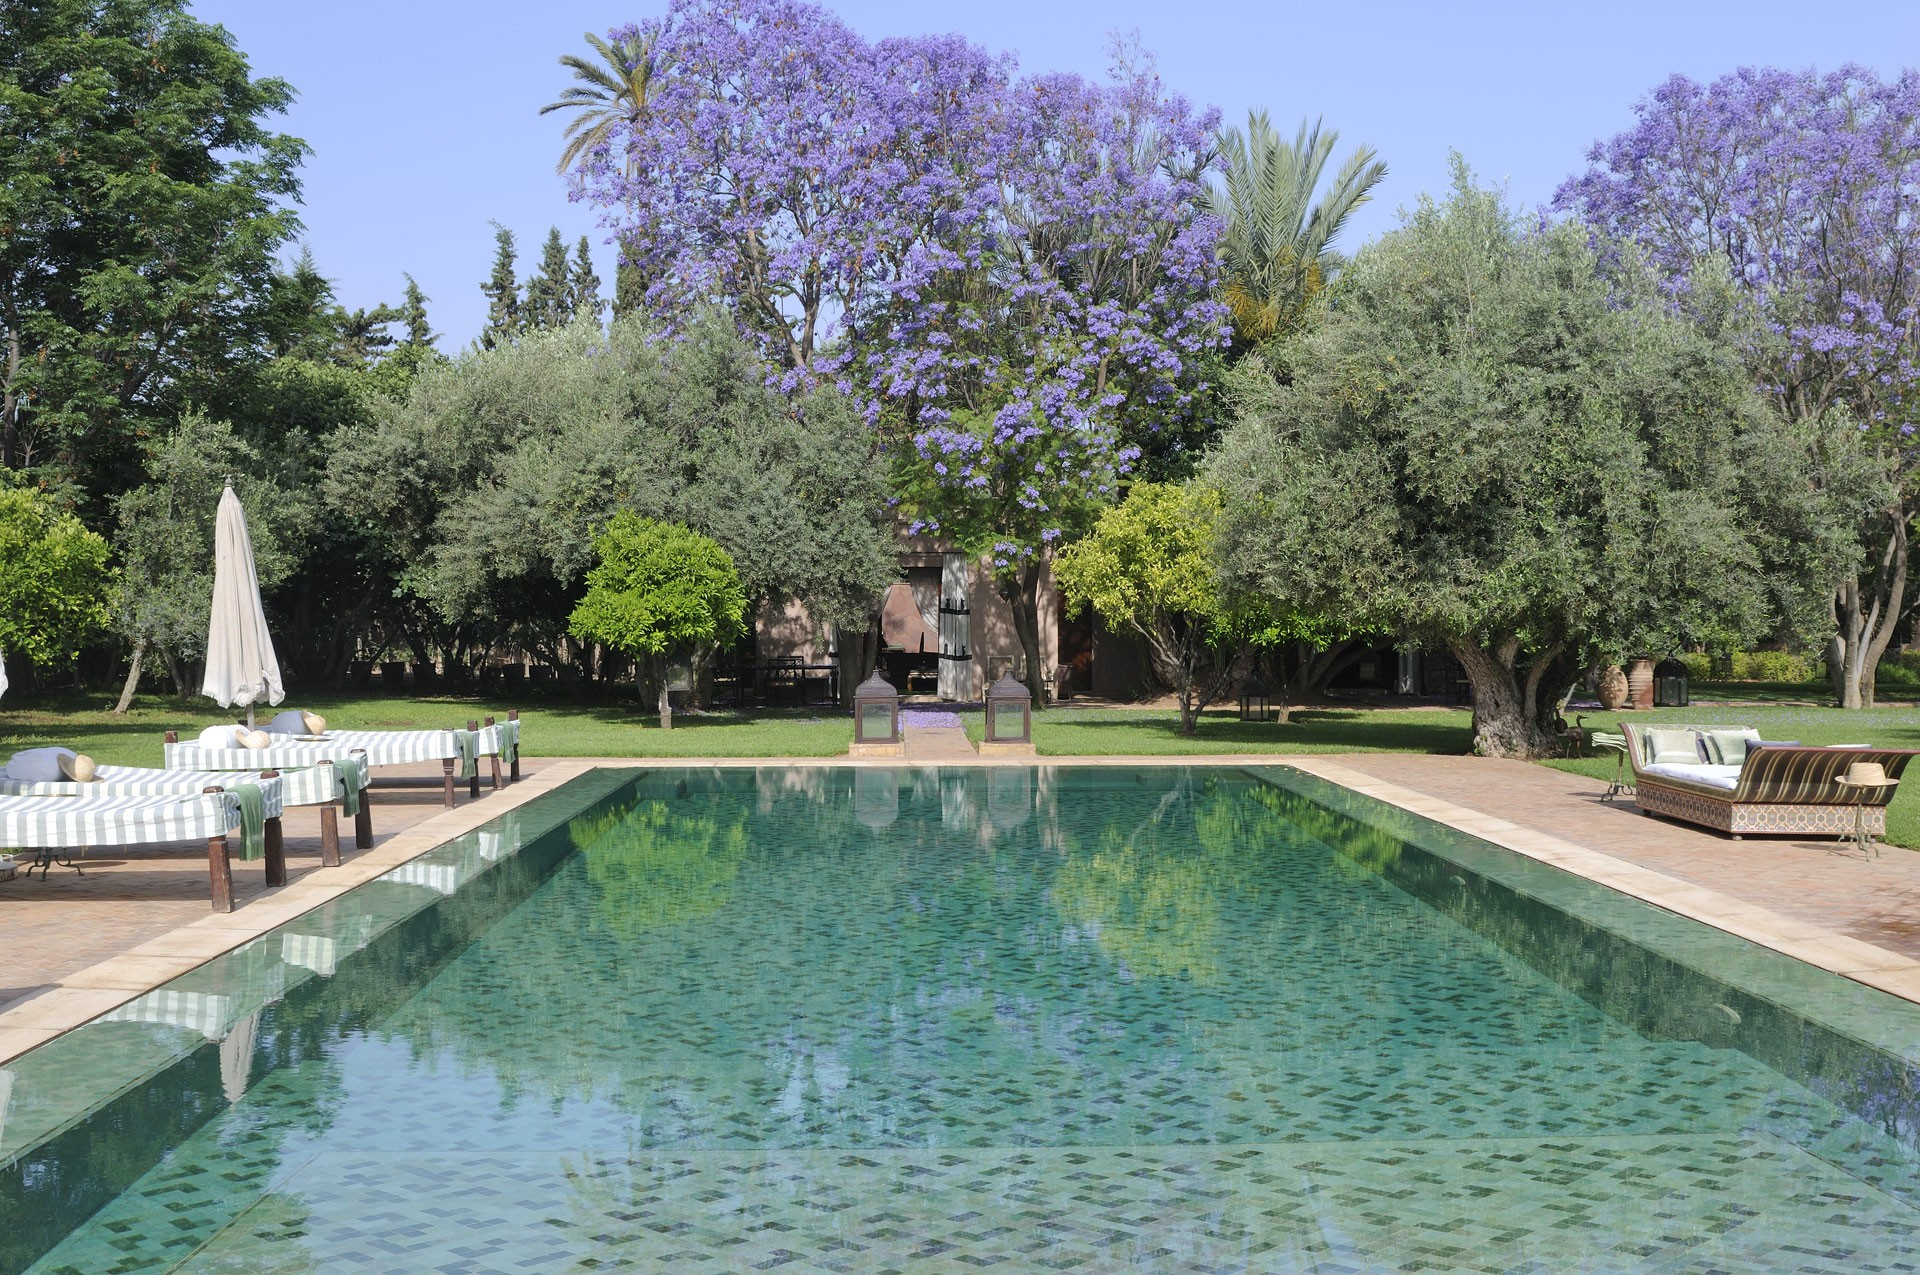 gallery-ezzahra-pool-with-purple-flowers